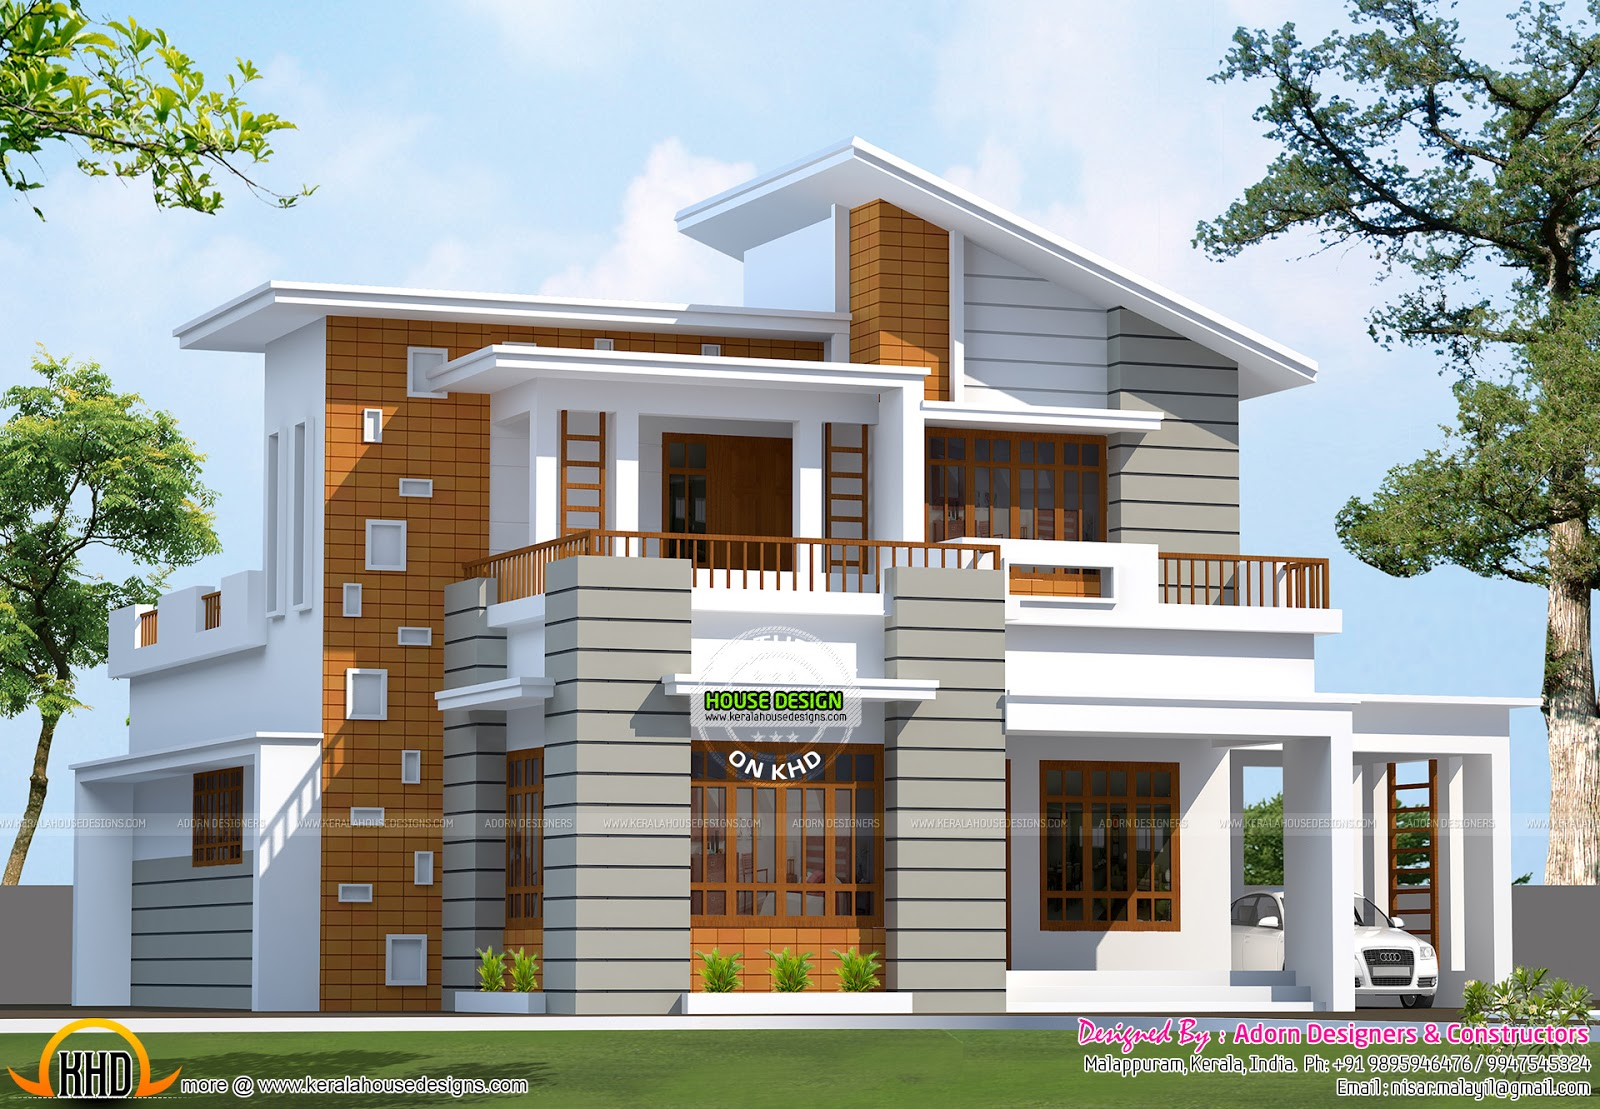 Indian house outlook design modern house for House and design